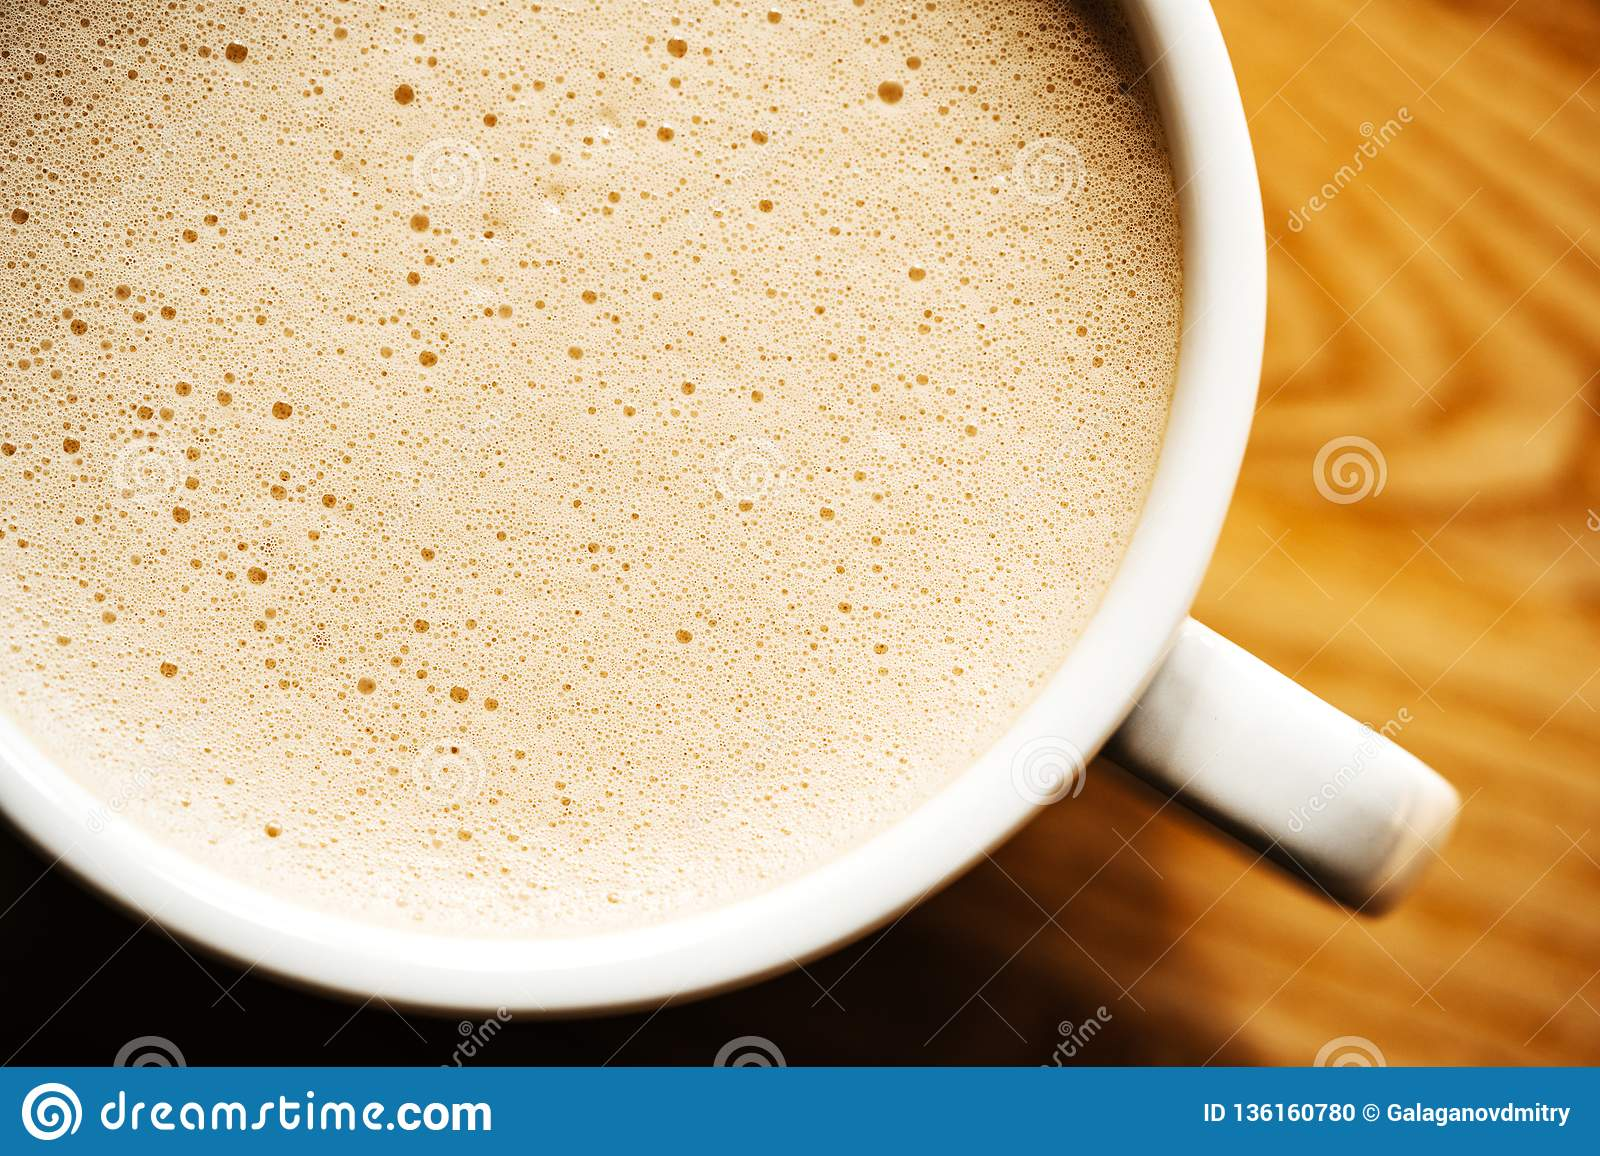 Cappuccino Or Latte With Frothy Foam Coffee Cup Top View